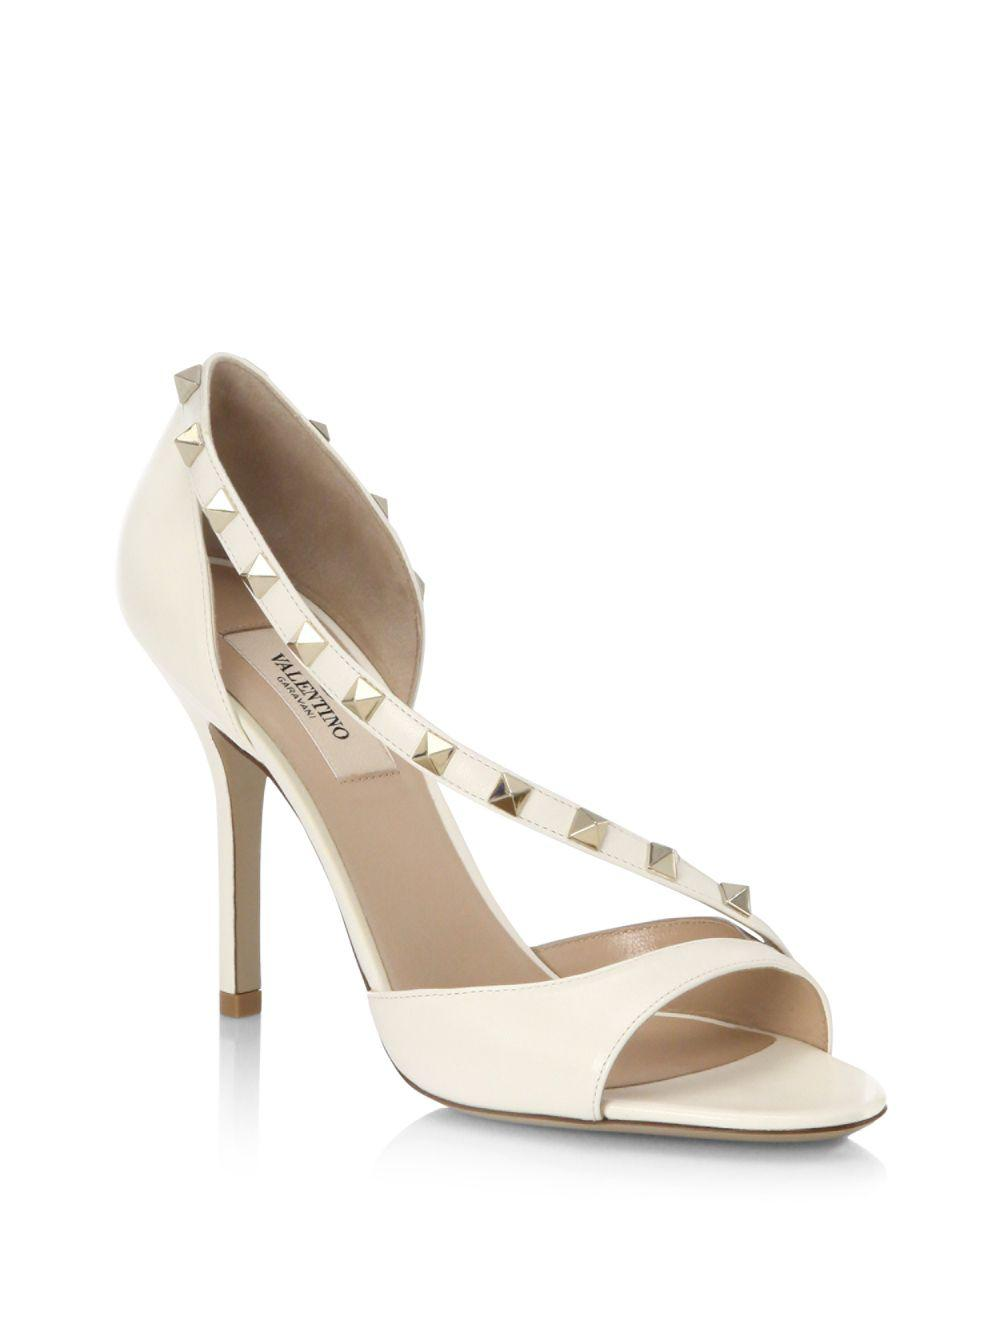 2eb3c327a78 Lyst - Valentino Rockstud Leather D orsay Peep Toe Pumps in White